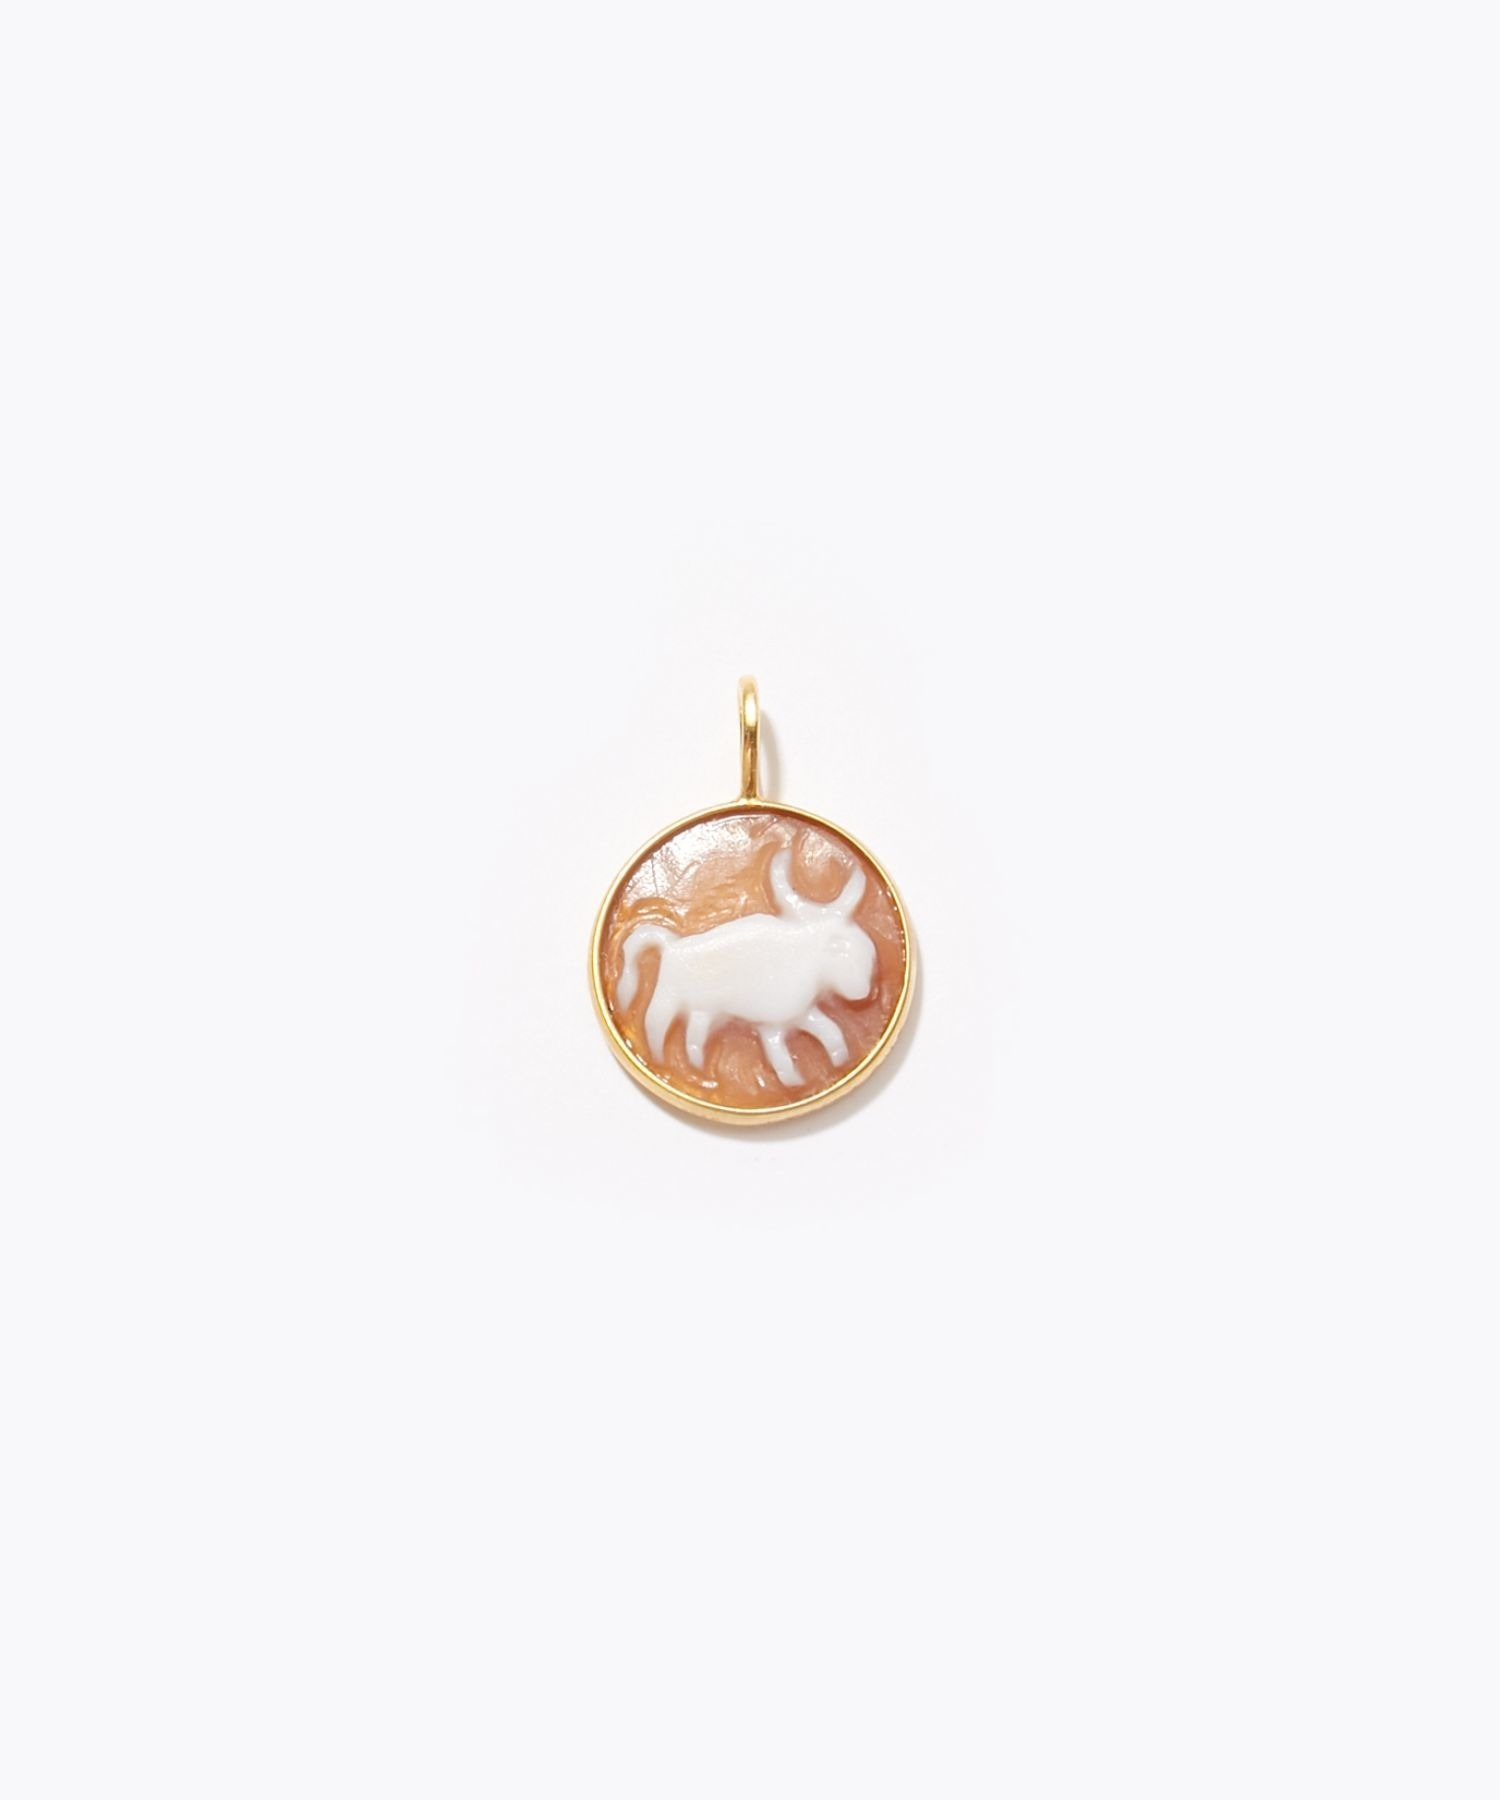 [constellation] Taurus cameo curving charm